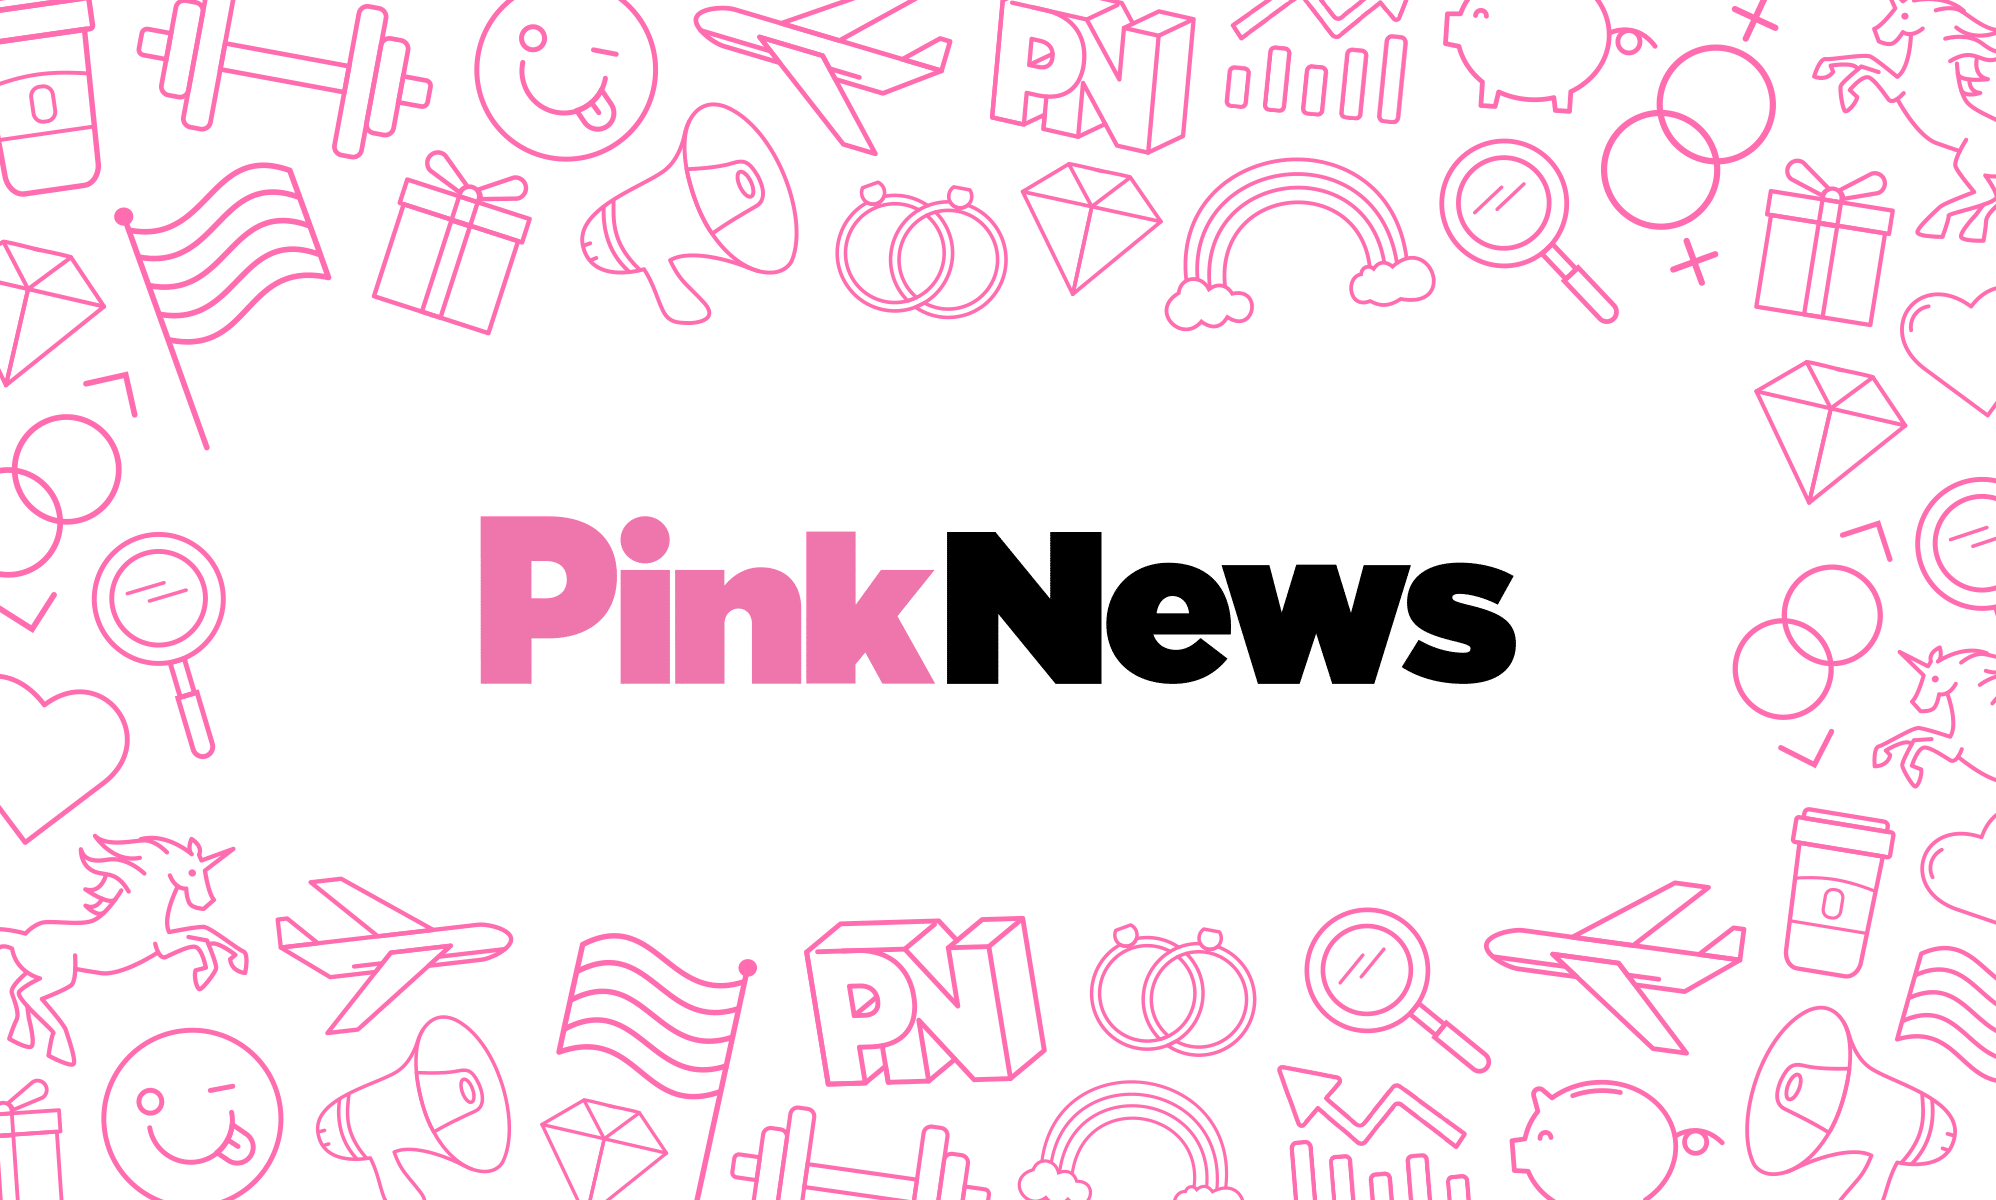 Baroness Tina Stowell to join Evan Davis for the PinkNews Debate